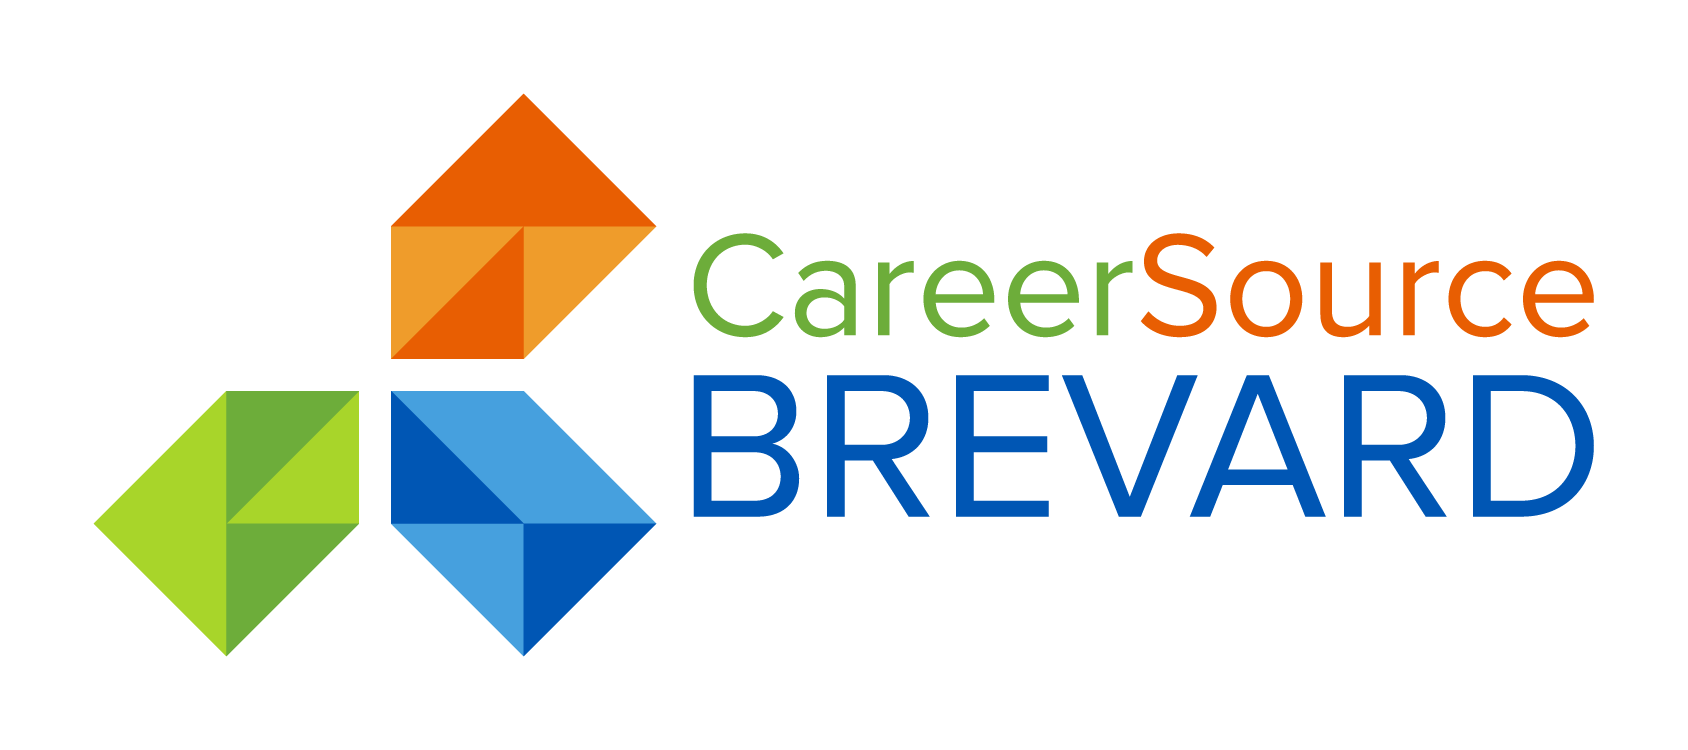 13 CareerSource Brevard_Full Color